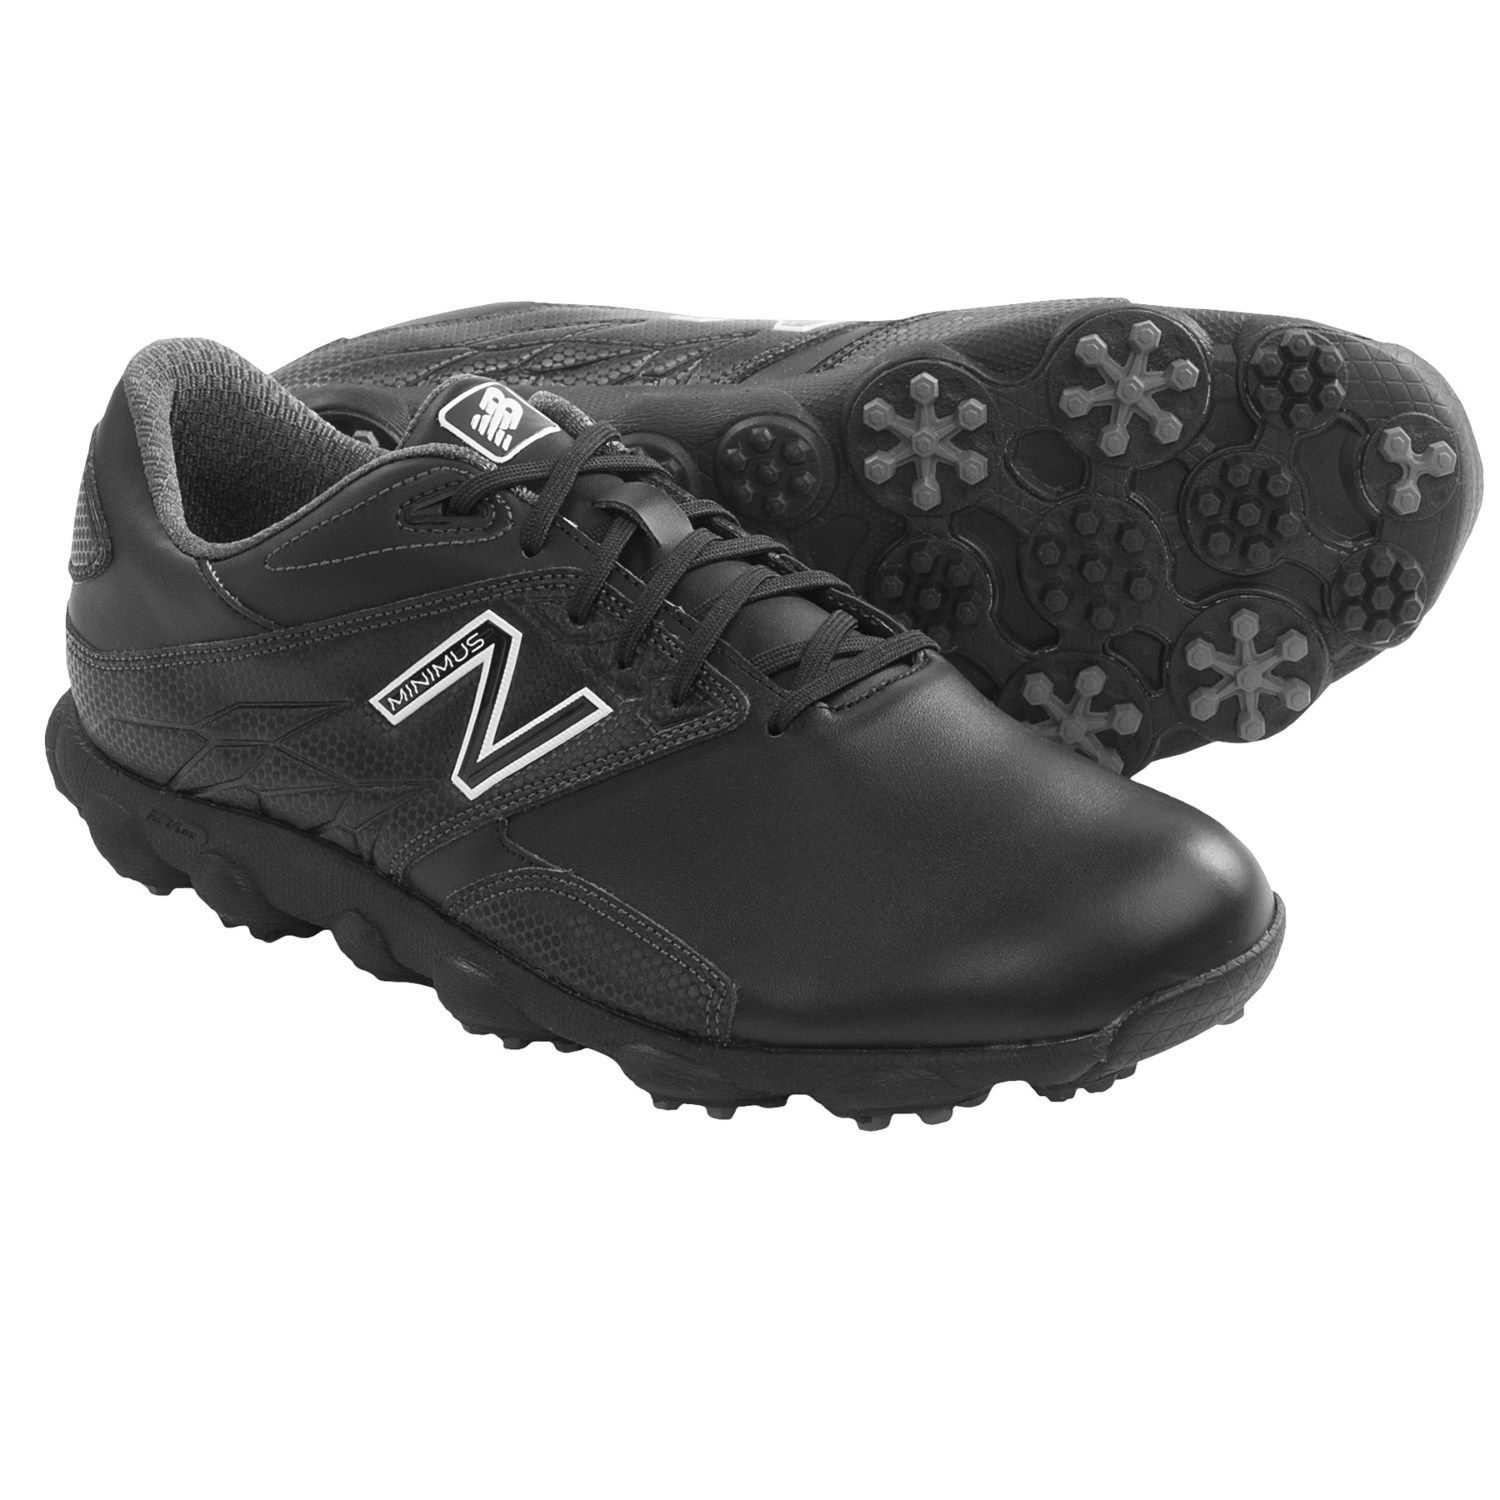 New Balance Minimus LX Golf Shoes (For Men) in Black/White